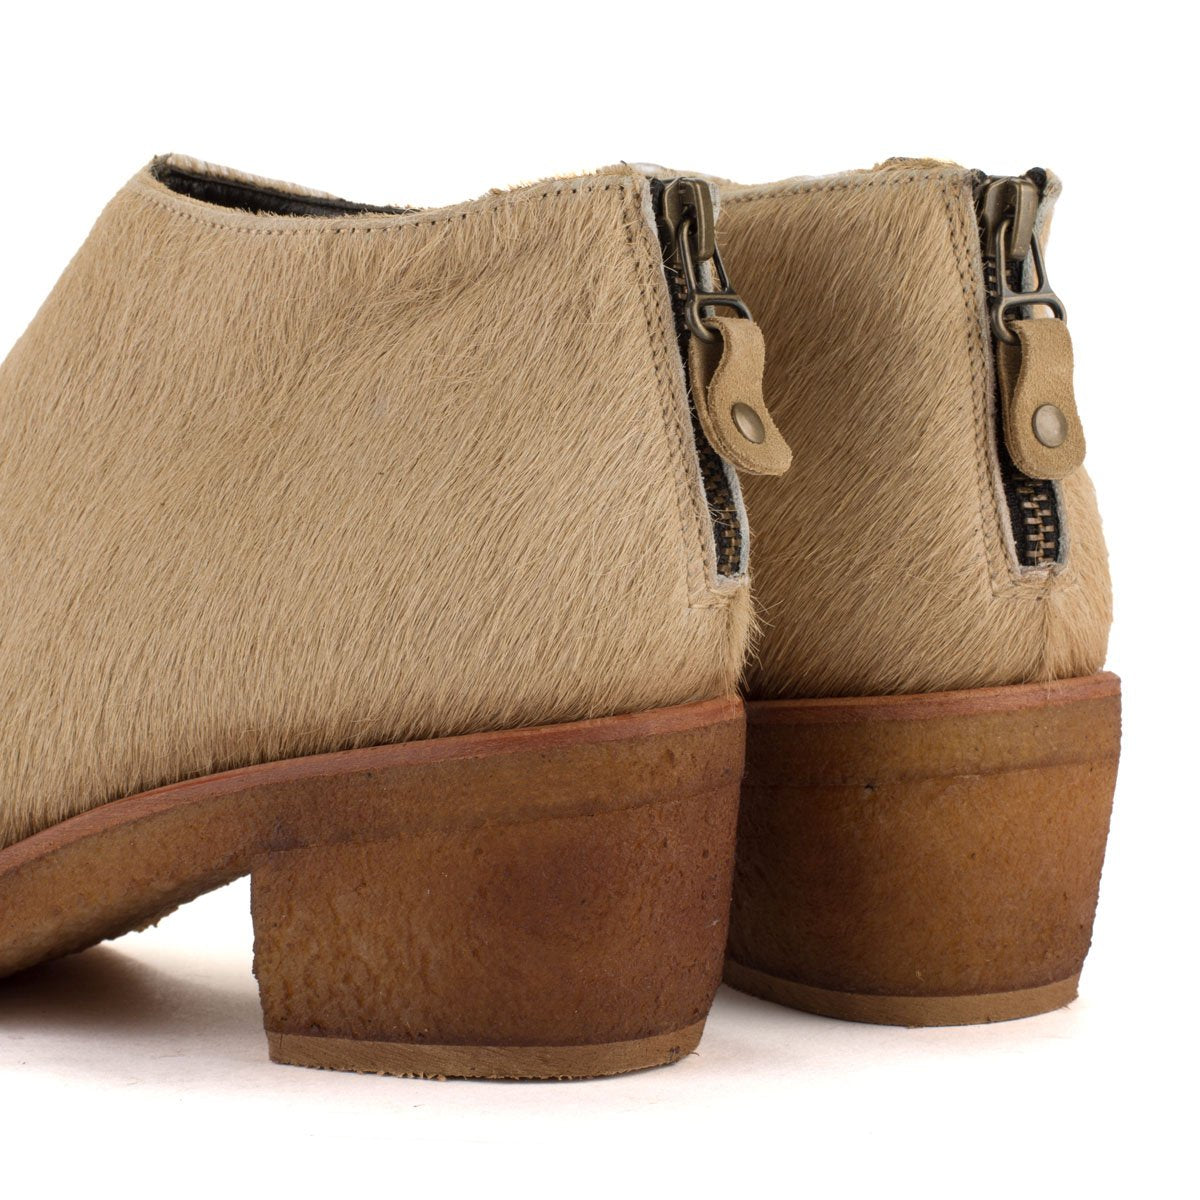 TEXAS02 ANKLE BOOTS – Pony sand